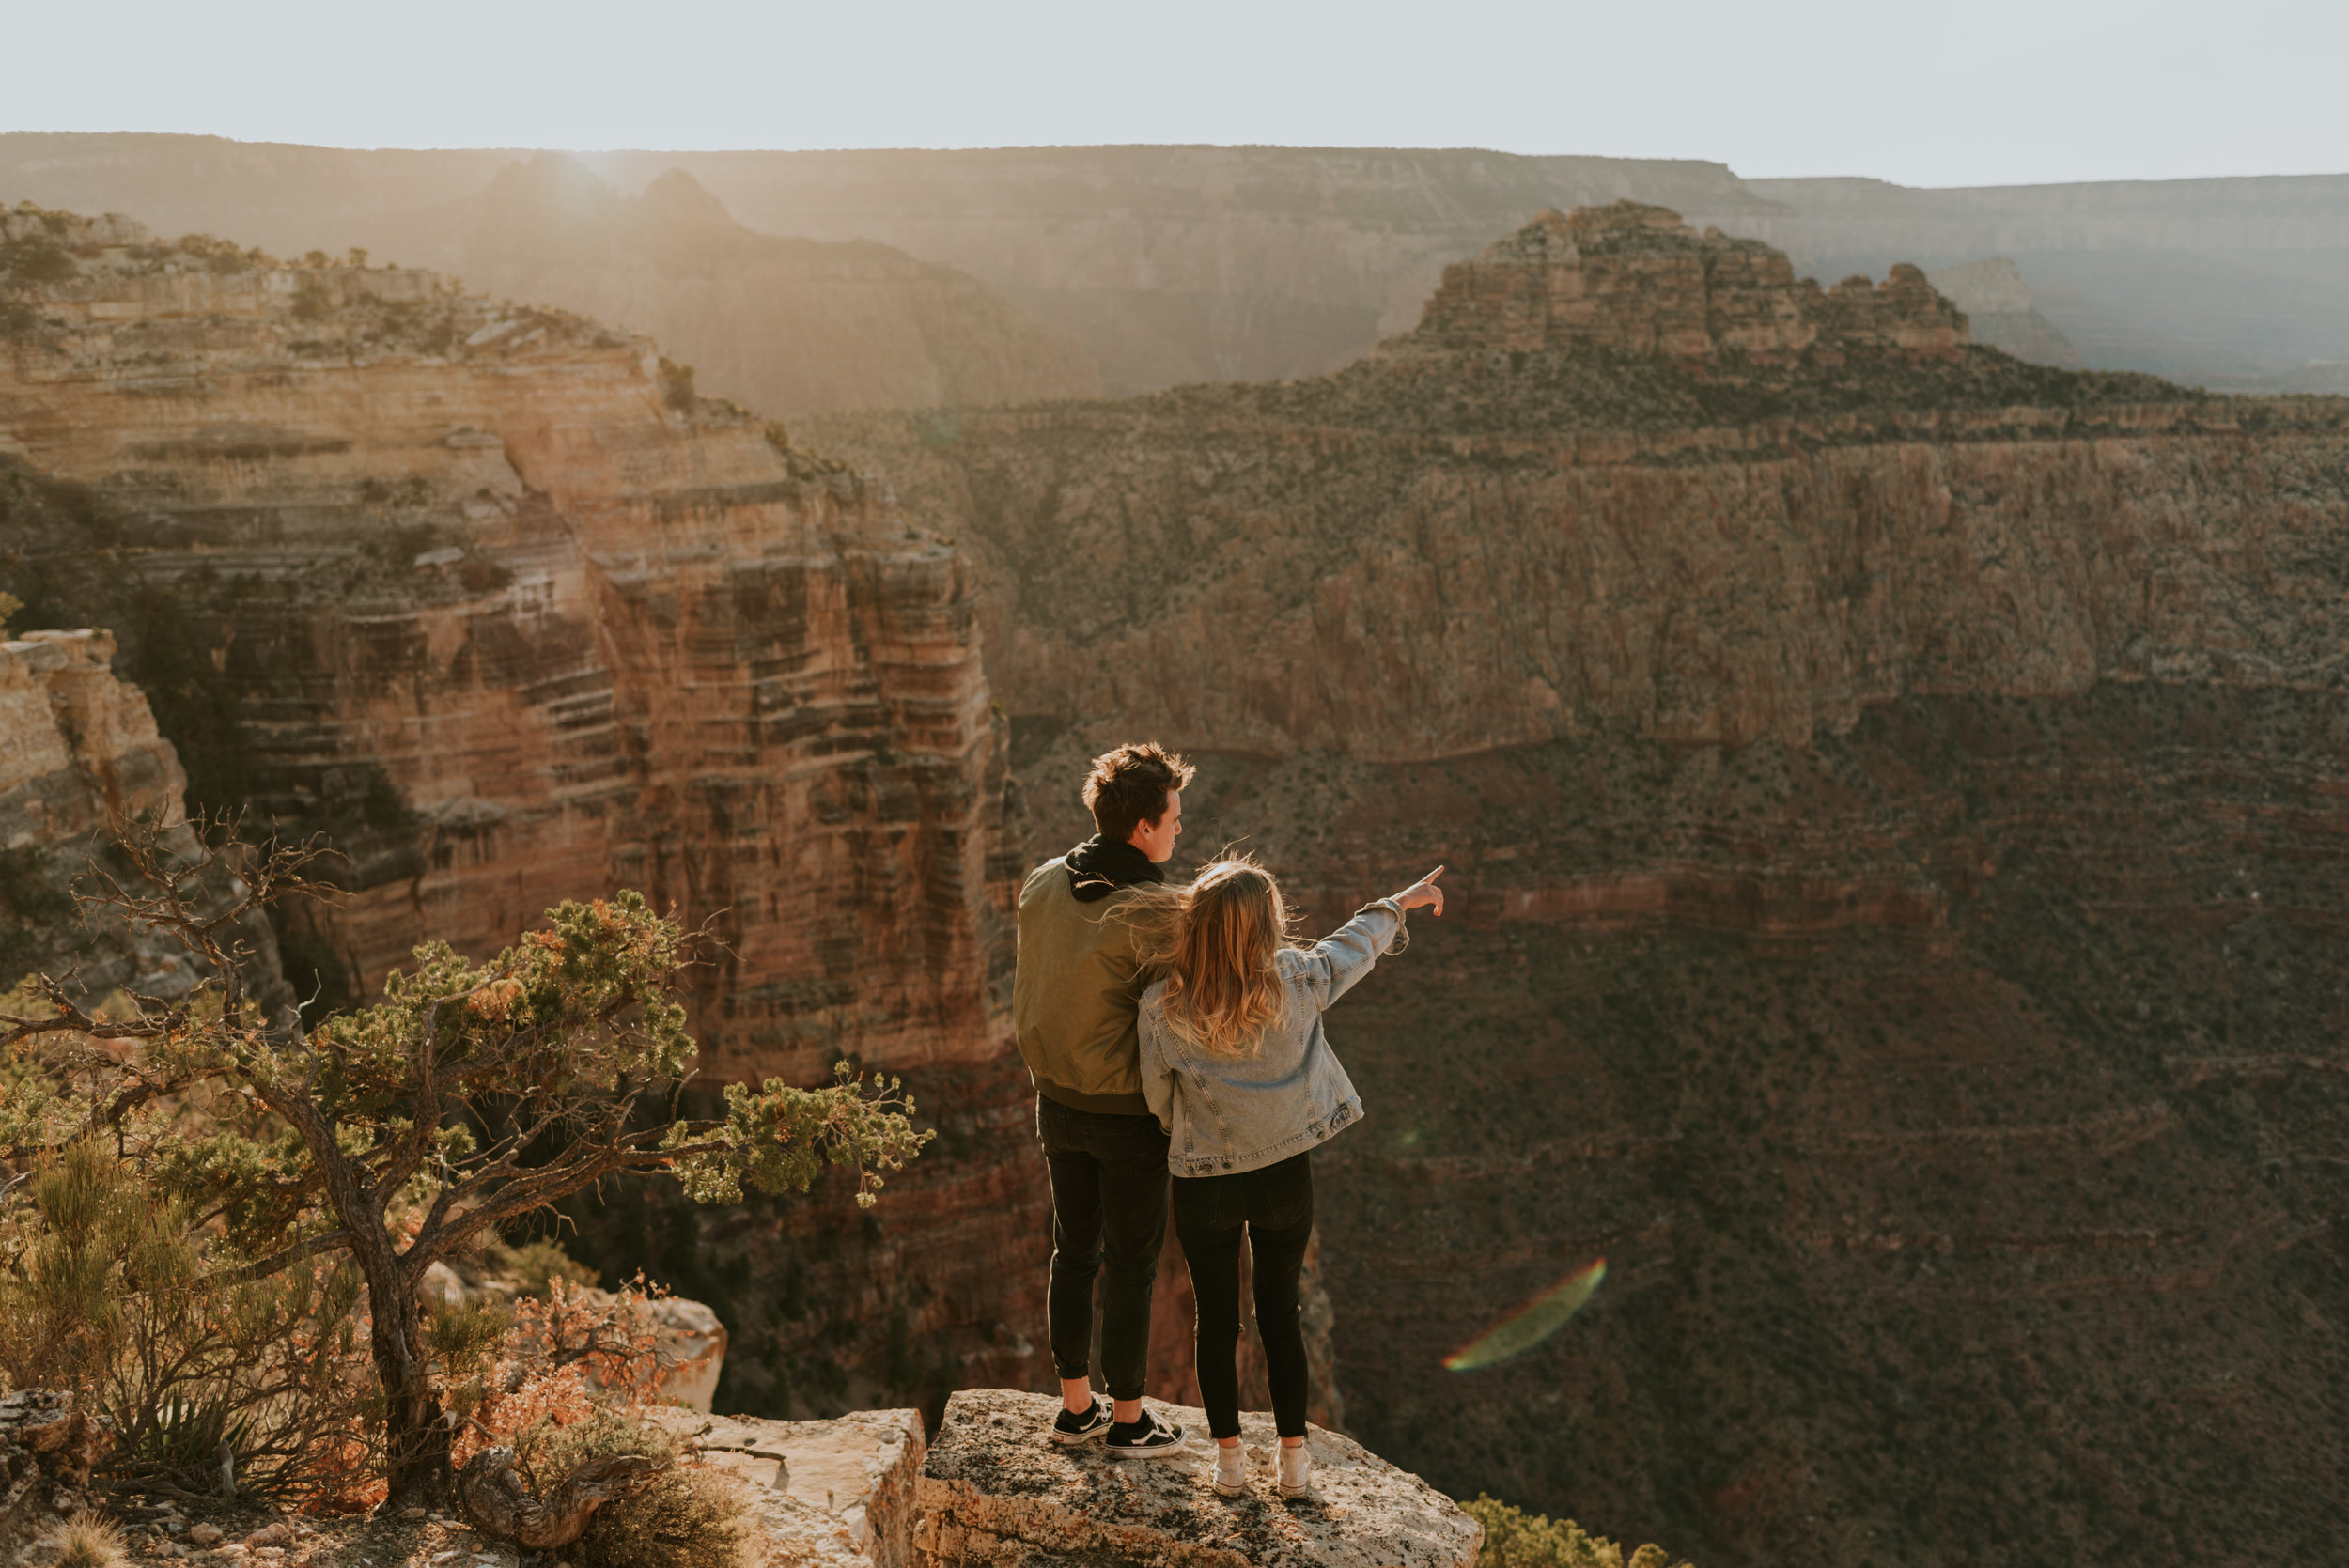 delcynoahgrandcanyoncouplessessioncarrierogersphotography-34.jpg